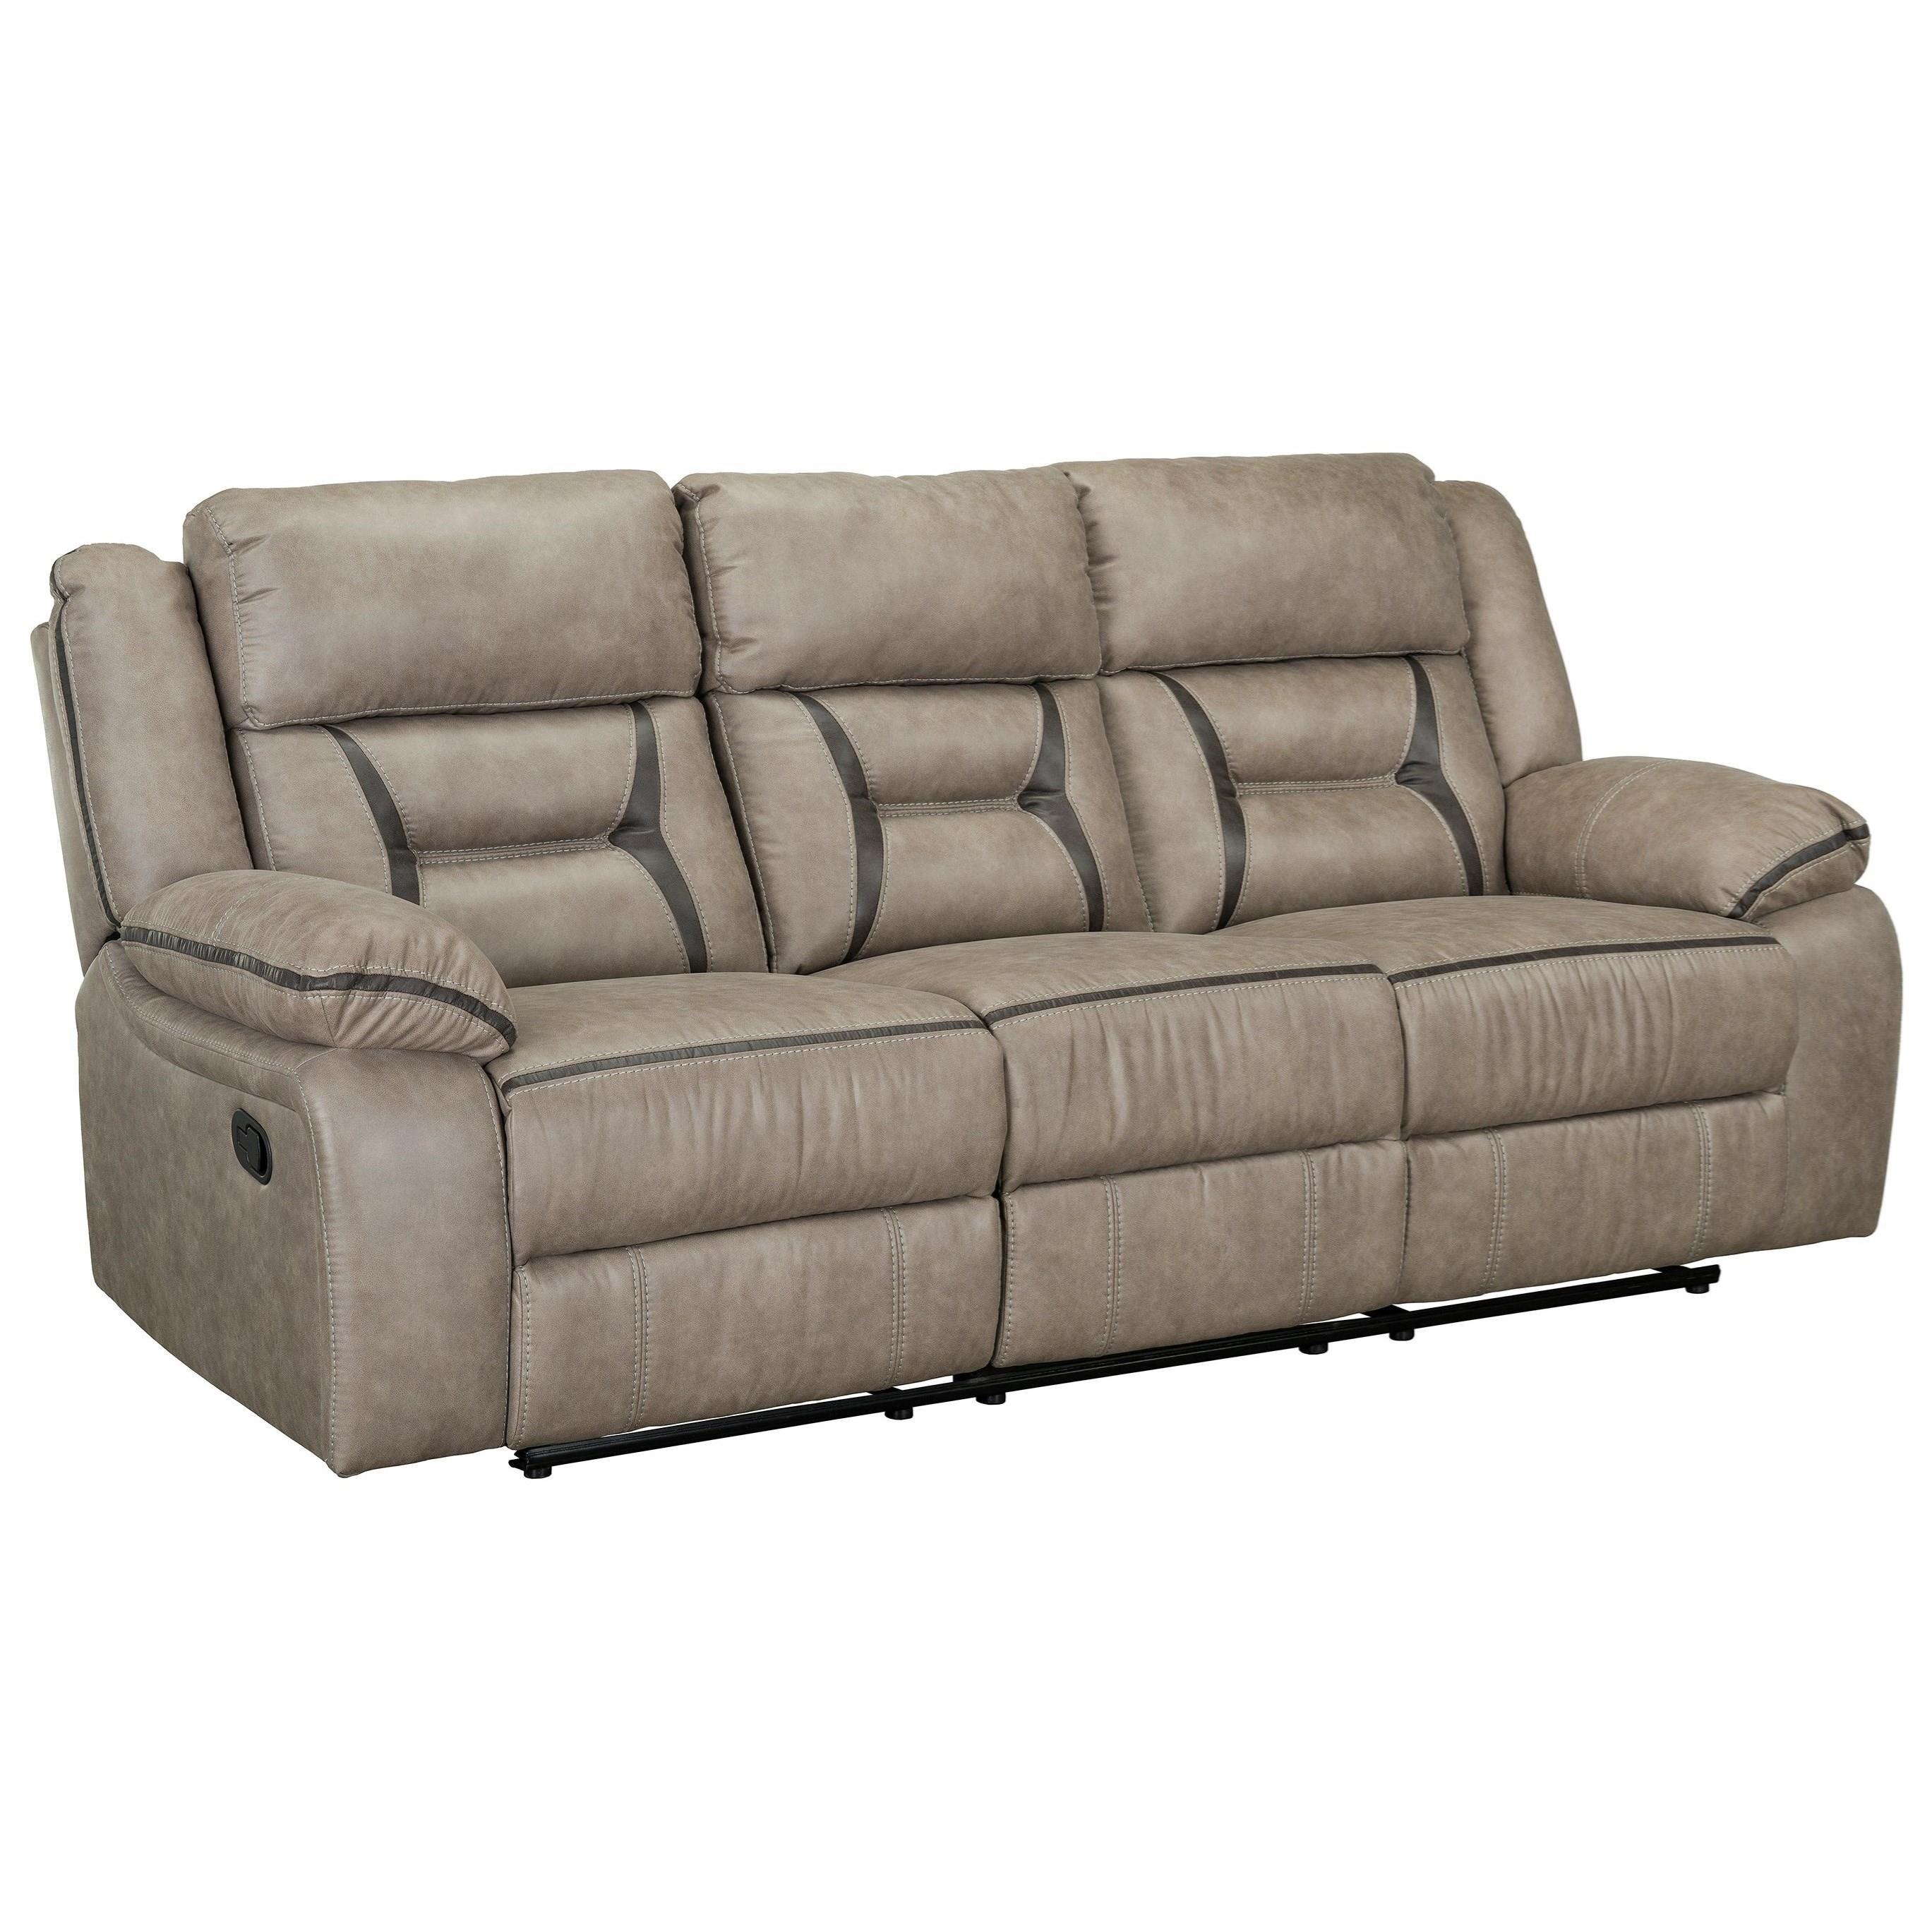 Acropolis Power Reclining Sofa by Standard Furniture at Beds N Stuff